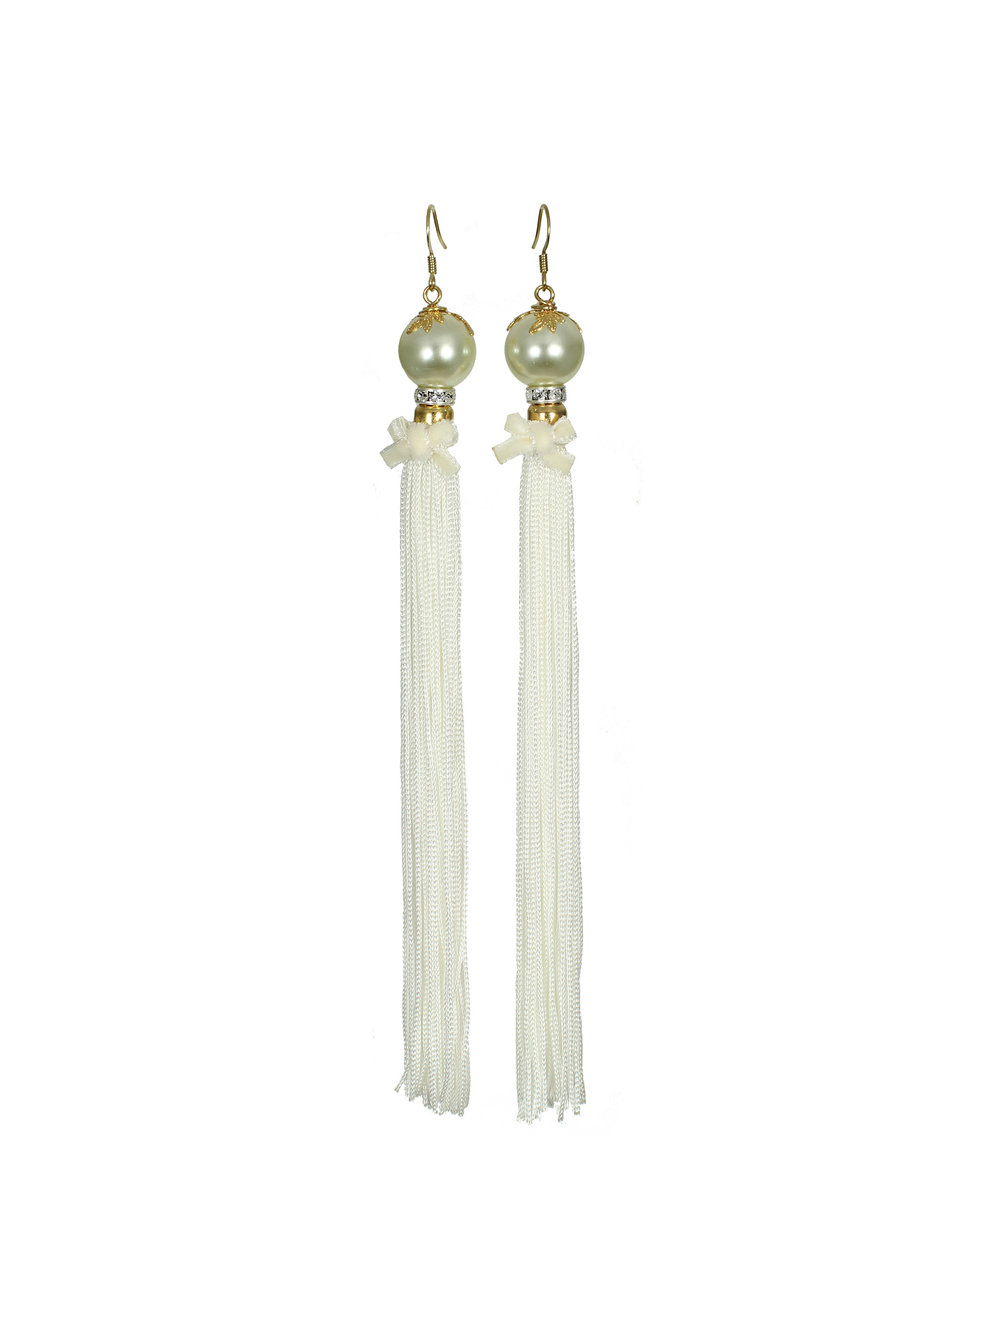 067W - Pearl & Tassel Earrings - White.jpg